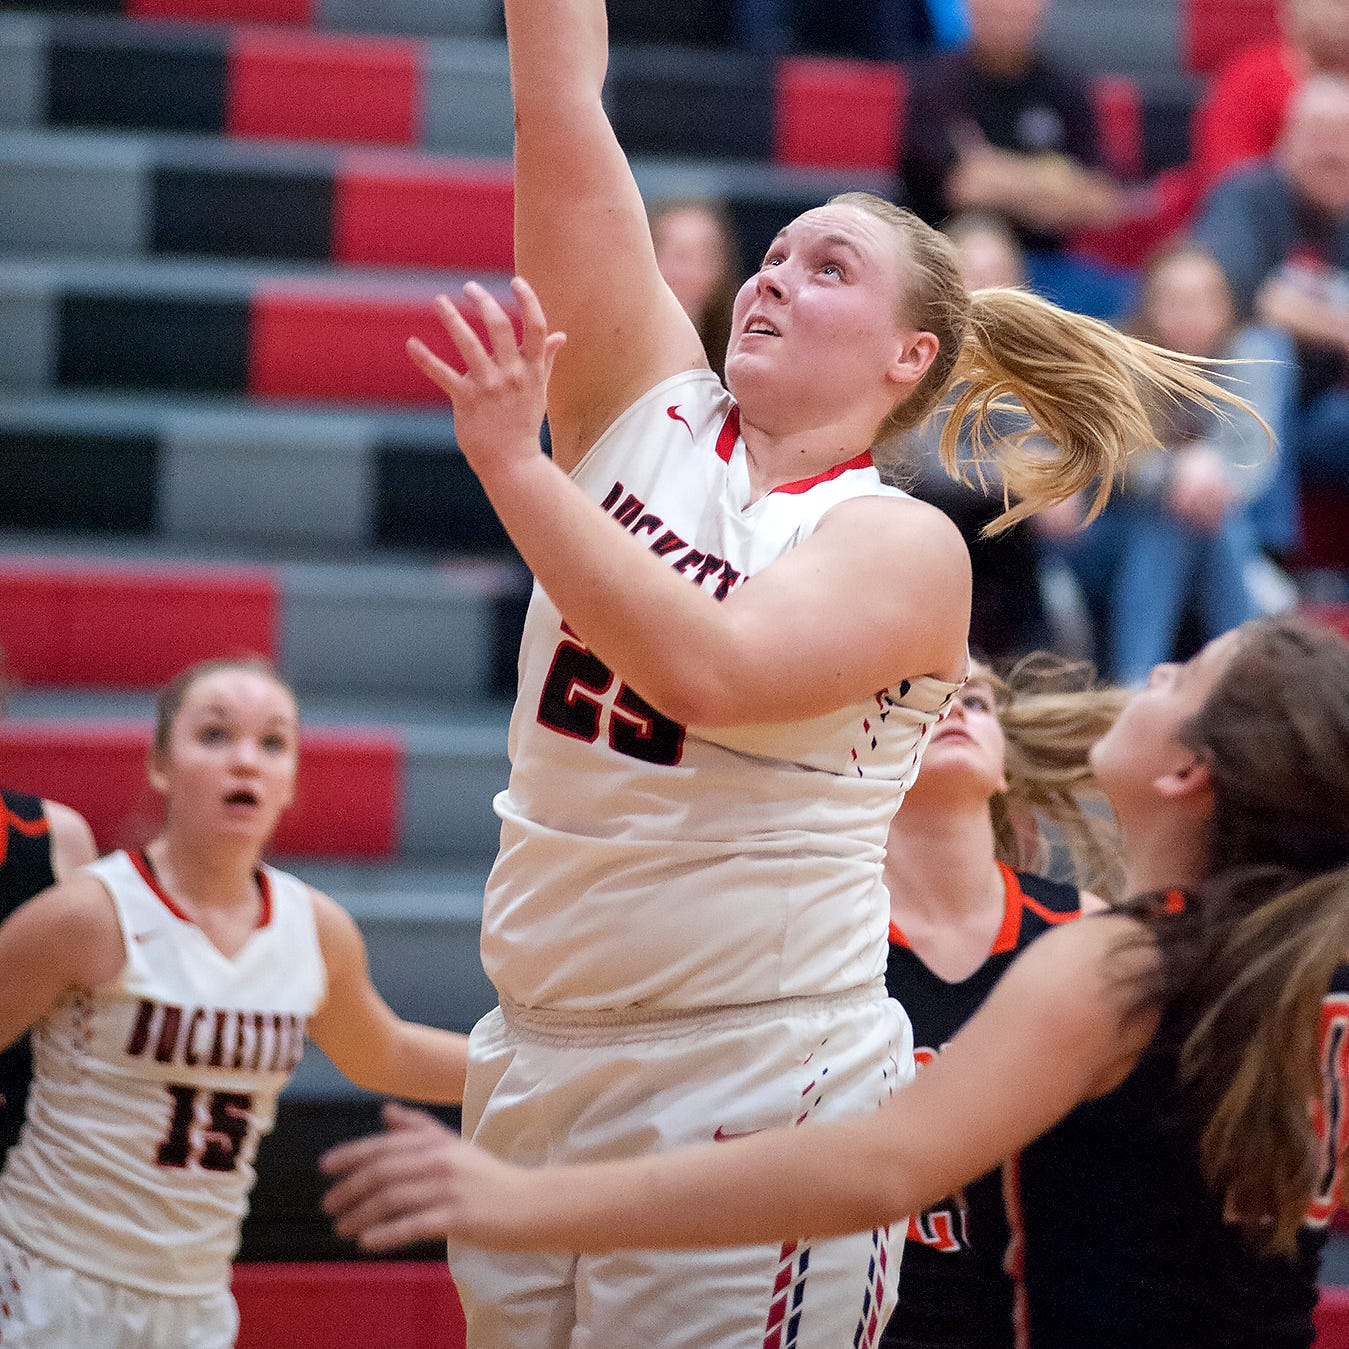 BC's Courtney Pifher named Telegraph-Forum girls basketball player of the year